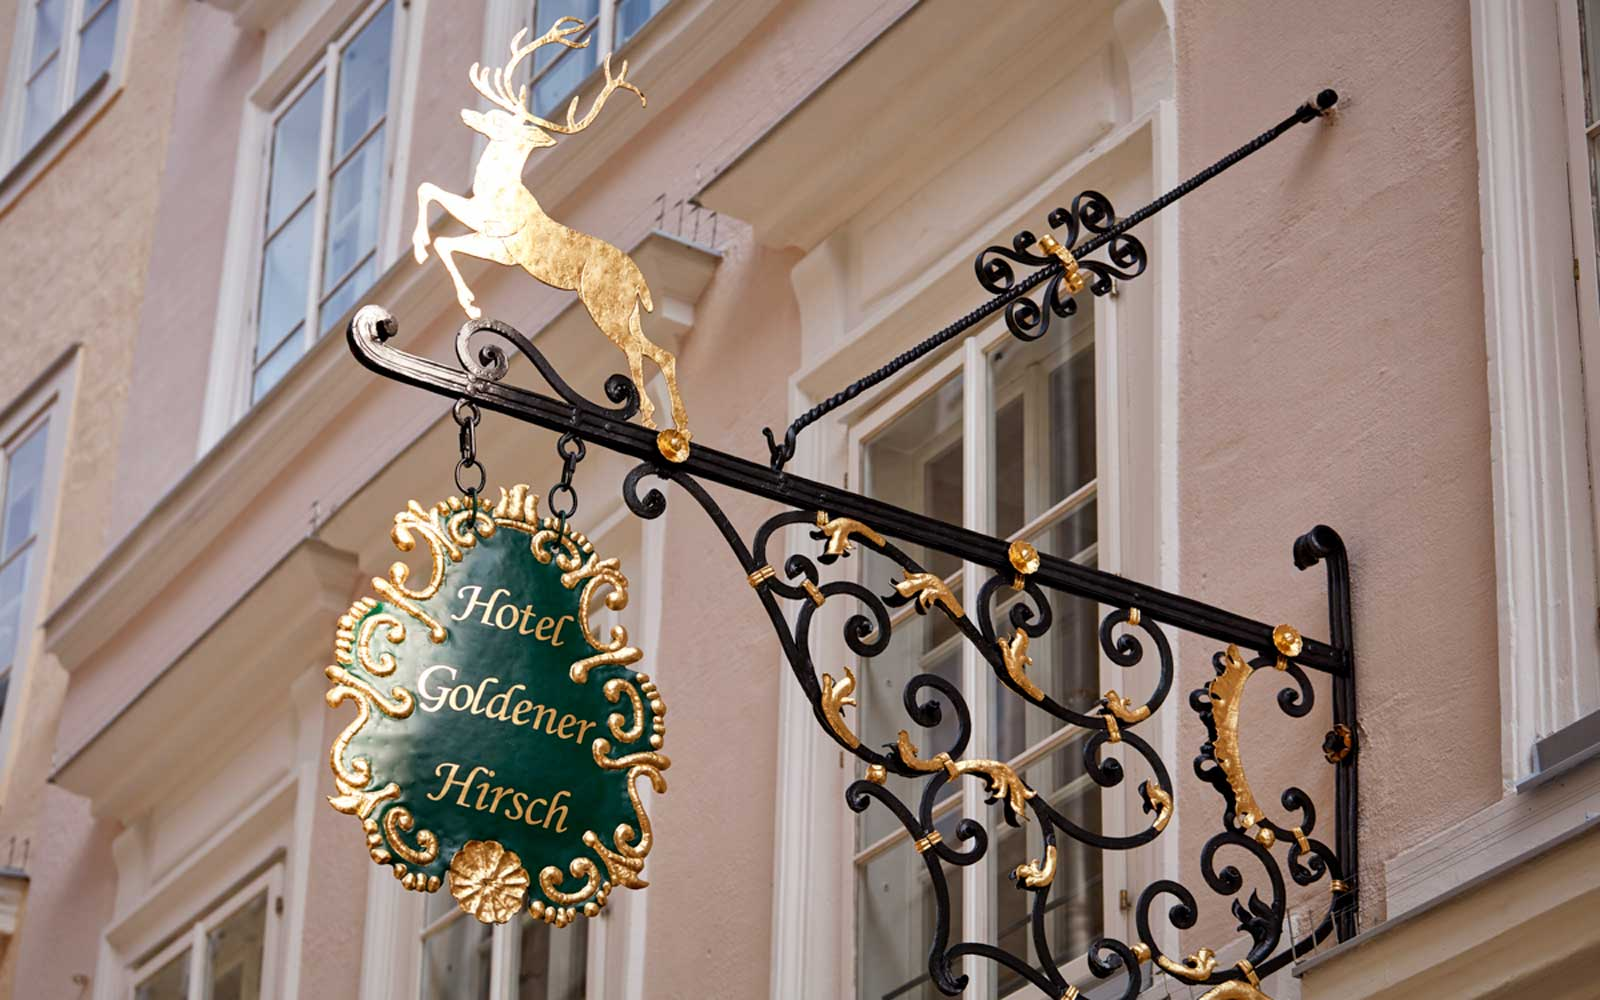 Sign for Hotel Goldener Hirsch in Salzburg, Austria